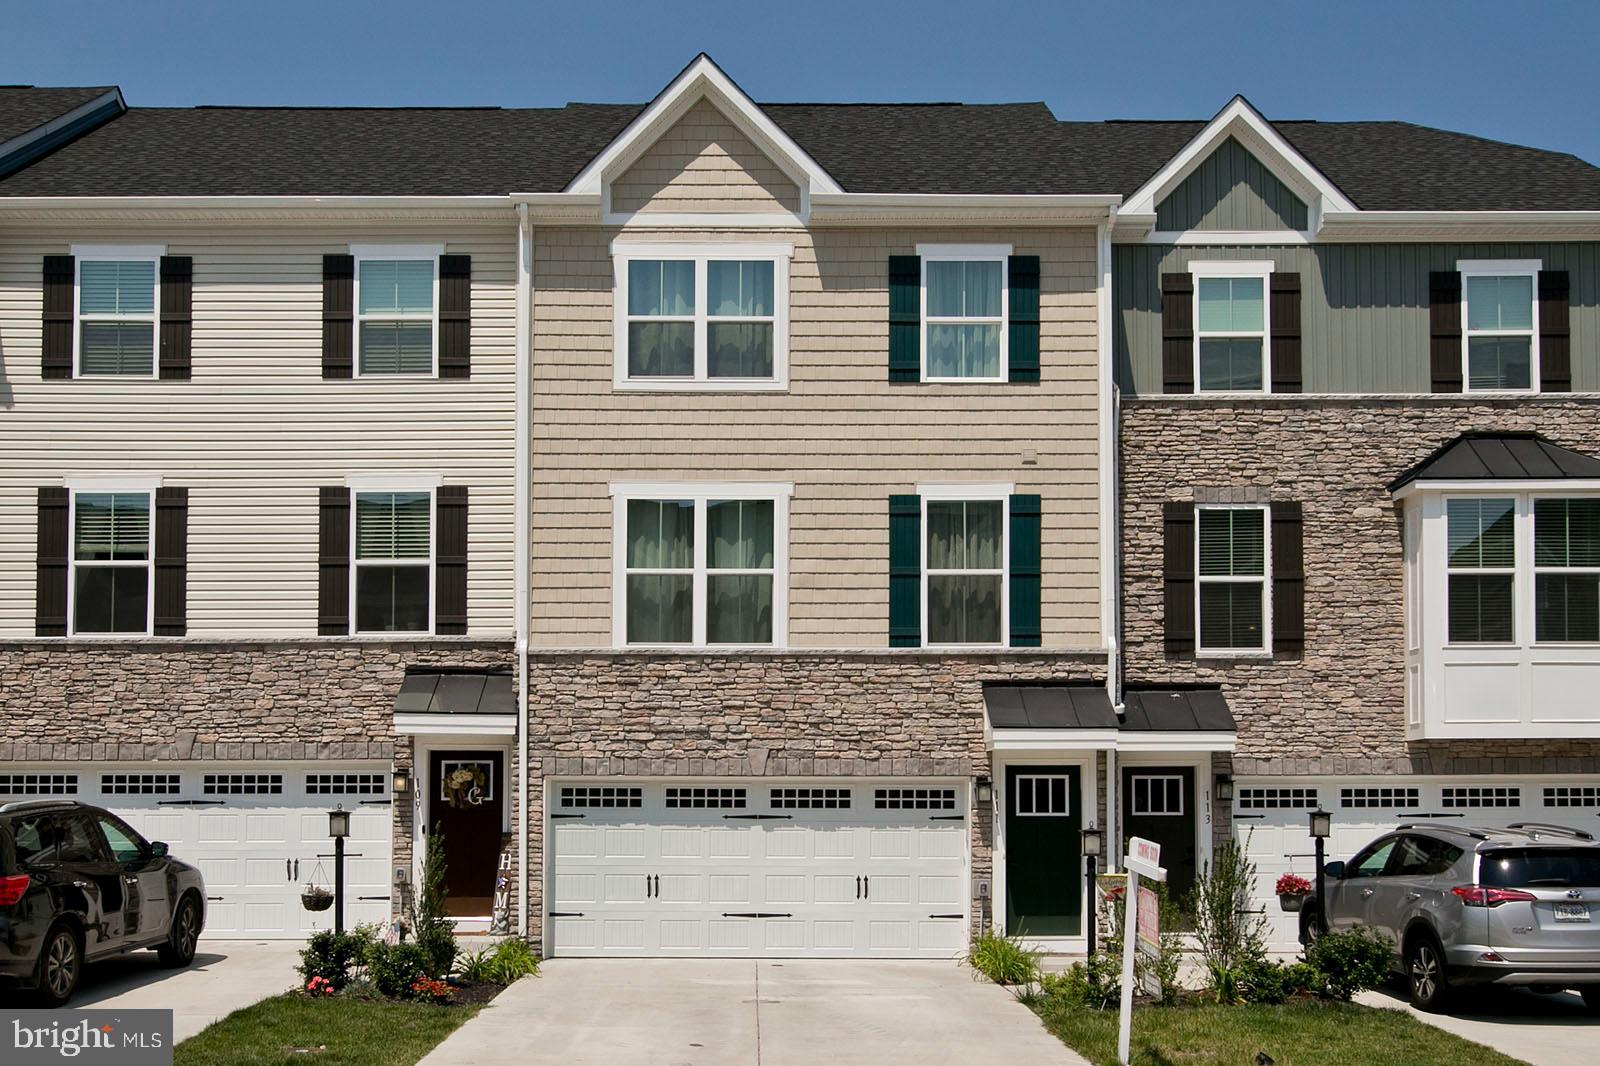 This Wonderful Townhome  with 3-level, 3 bedrooms, 2.5 bathrooms and 2 car garage.  The garage has b